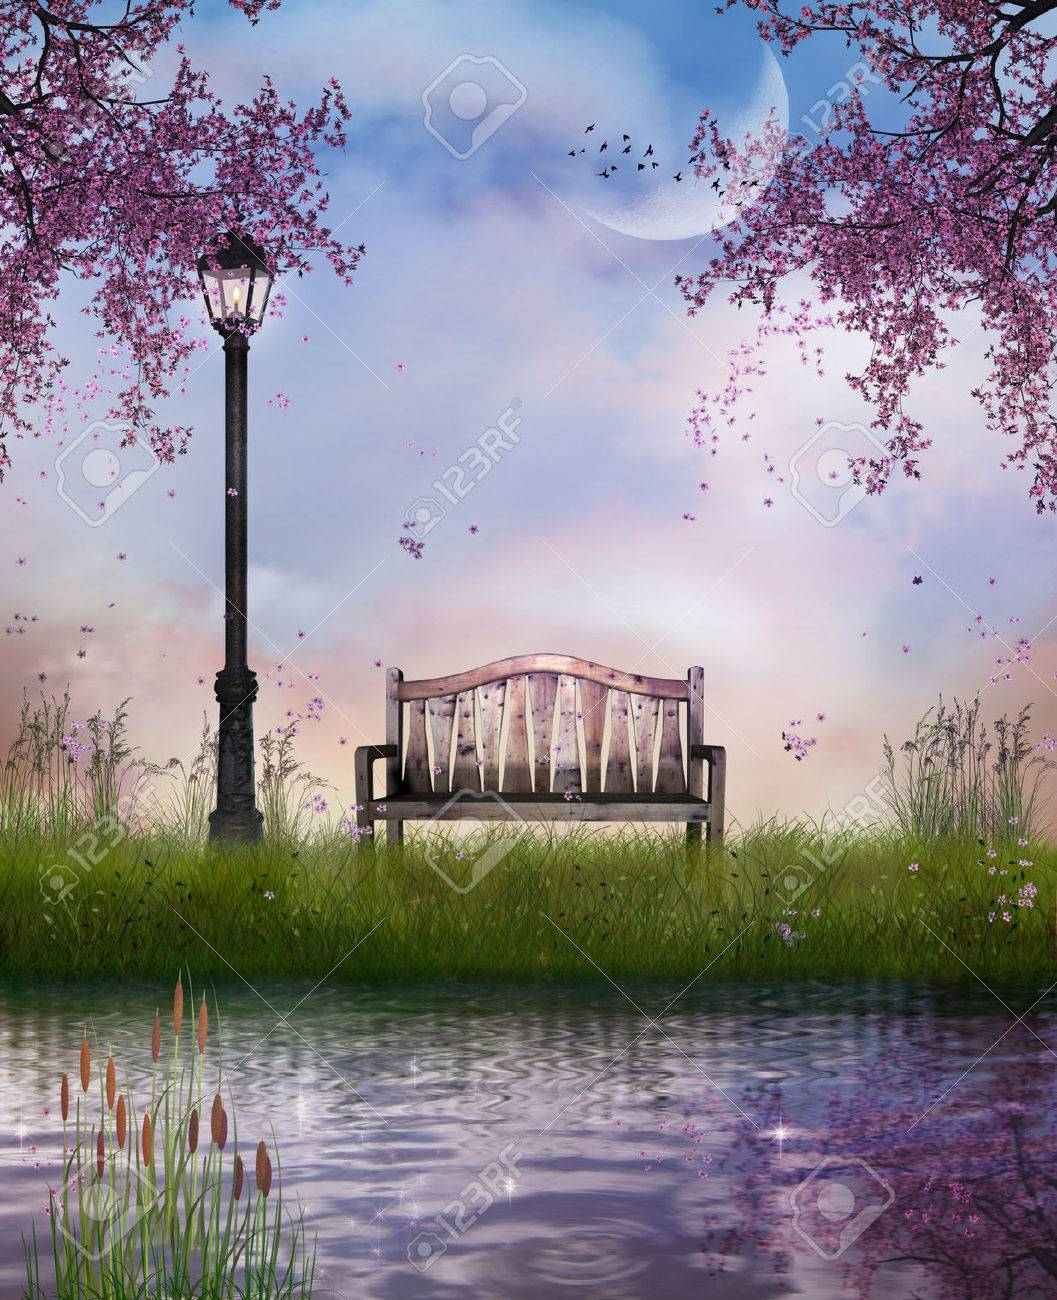 a bench and the river in spring time - 27613749